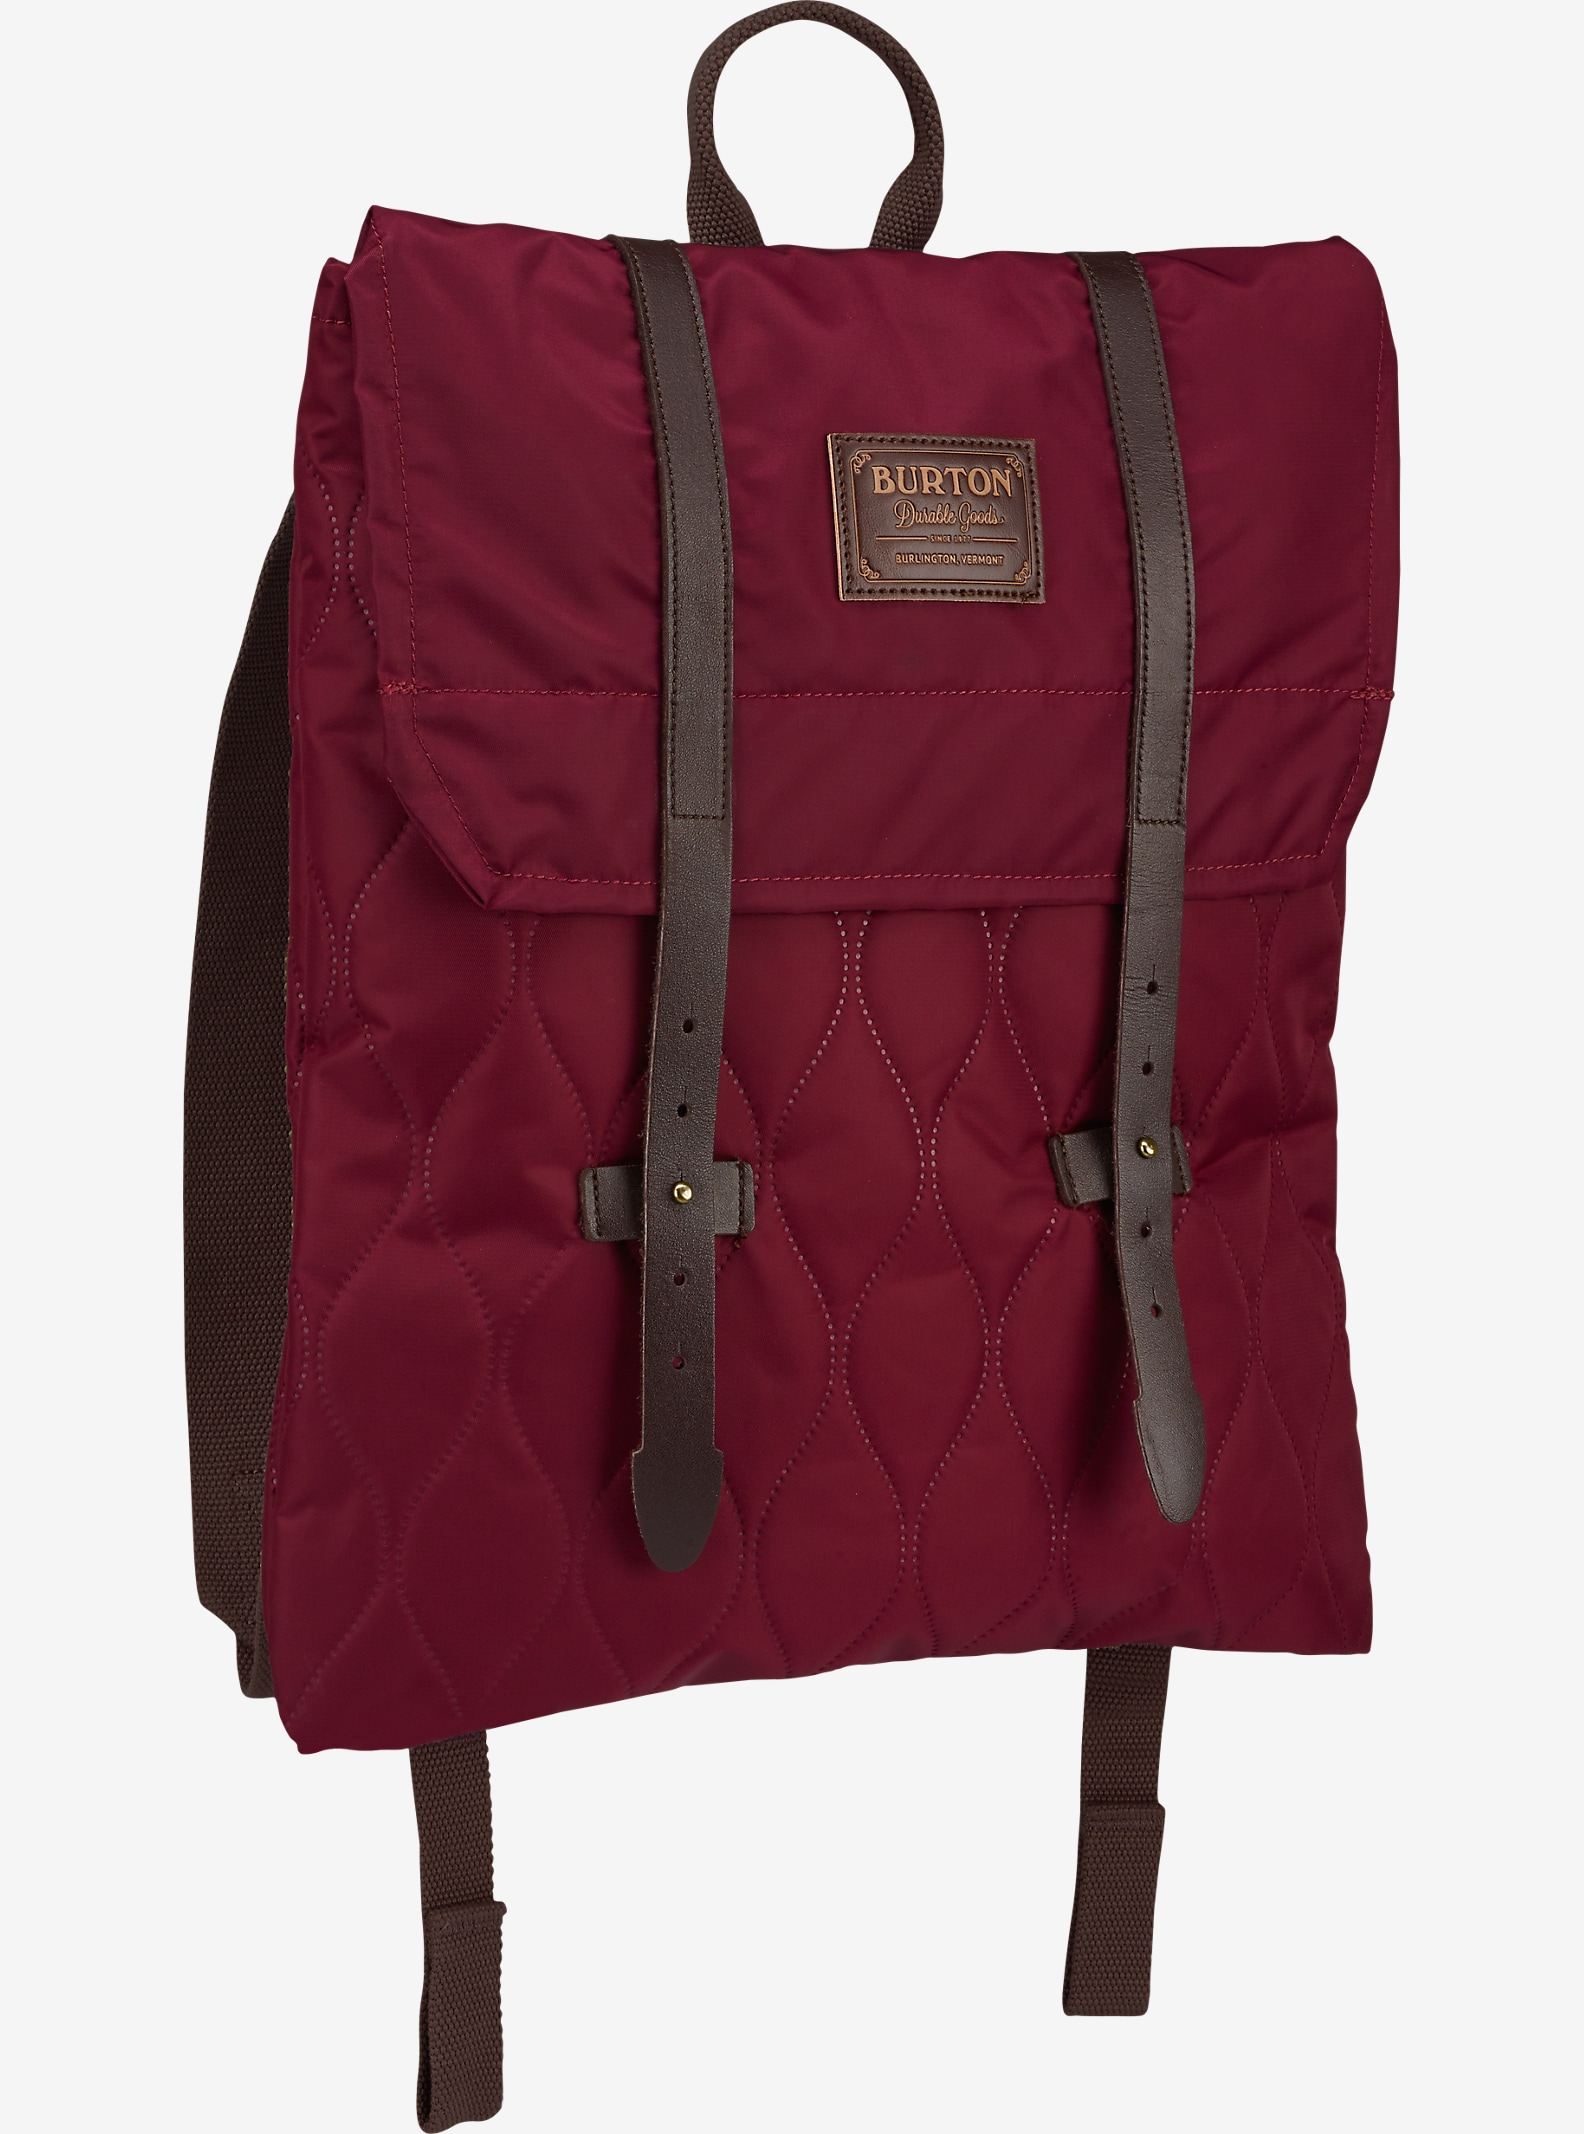 Burton Women's Taylor Backpack shown in Quilted Zinfandel